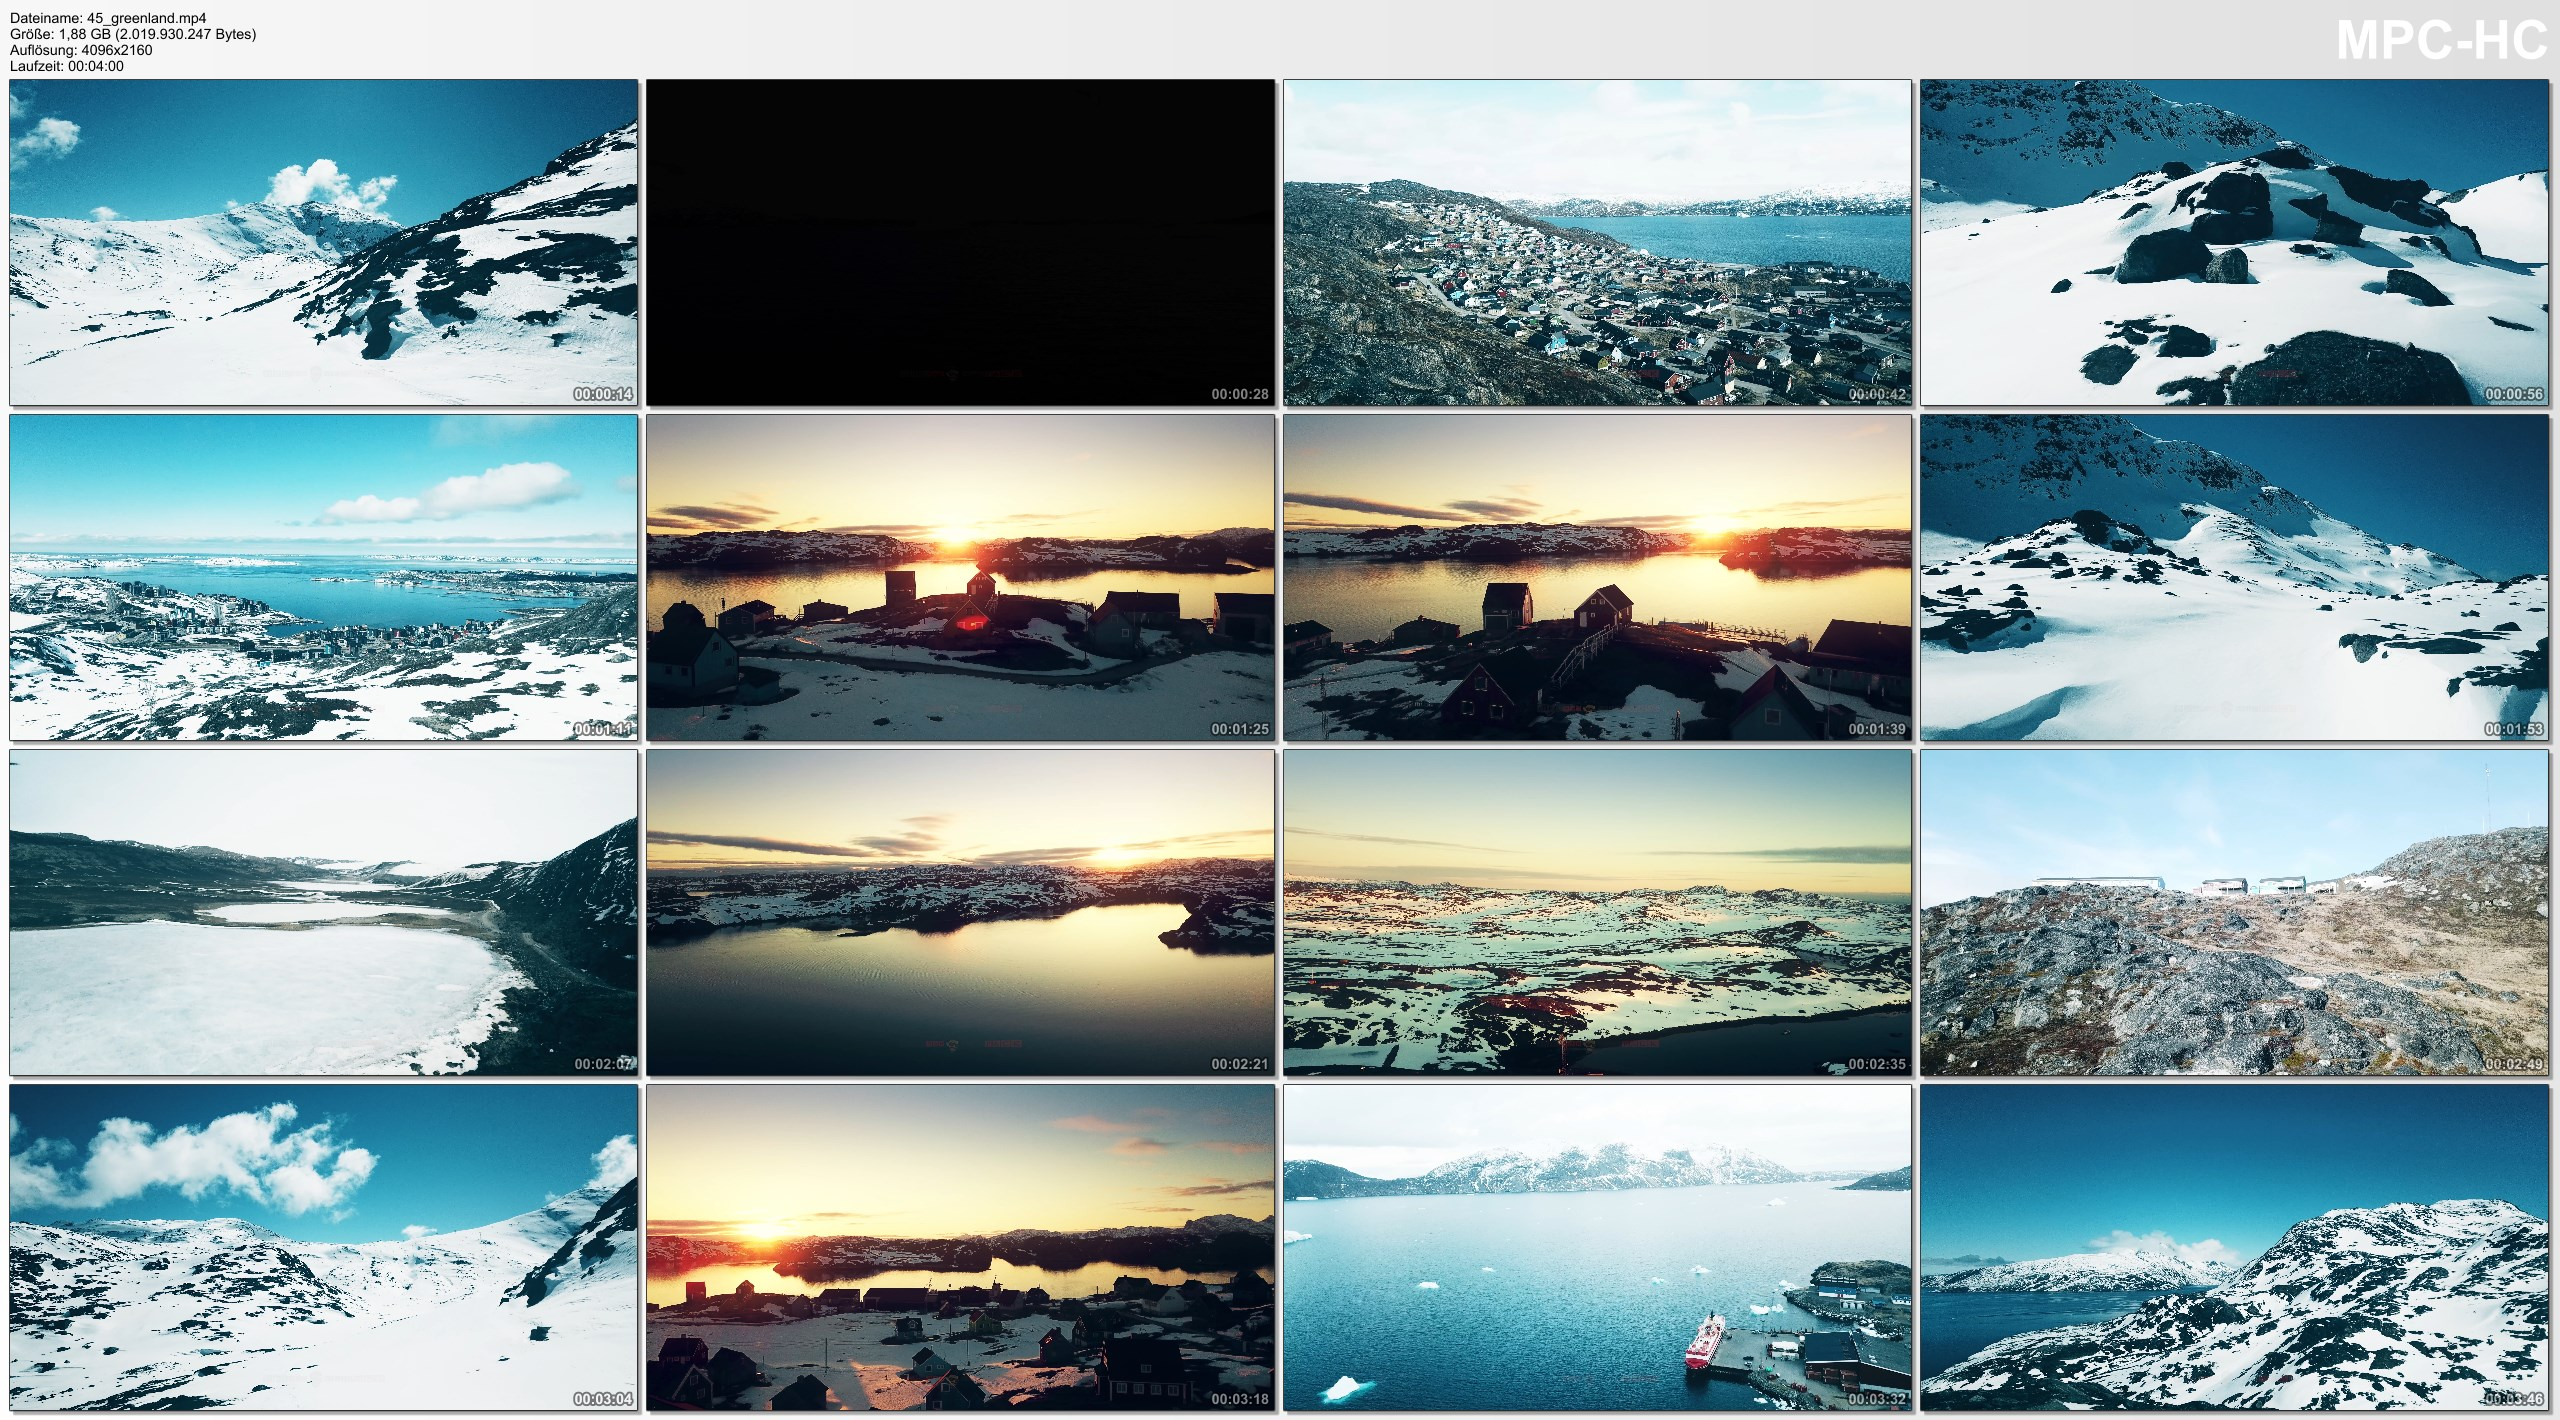 Drone Pictures from Video 【4K】Drone Footage GREENLAND [DJI Mavic Pro]